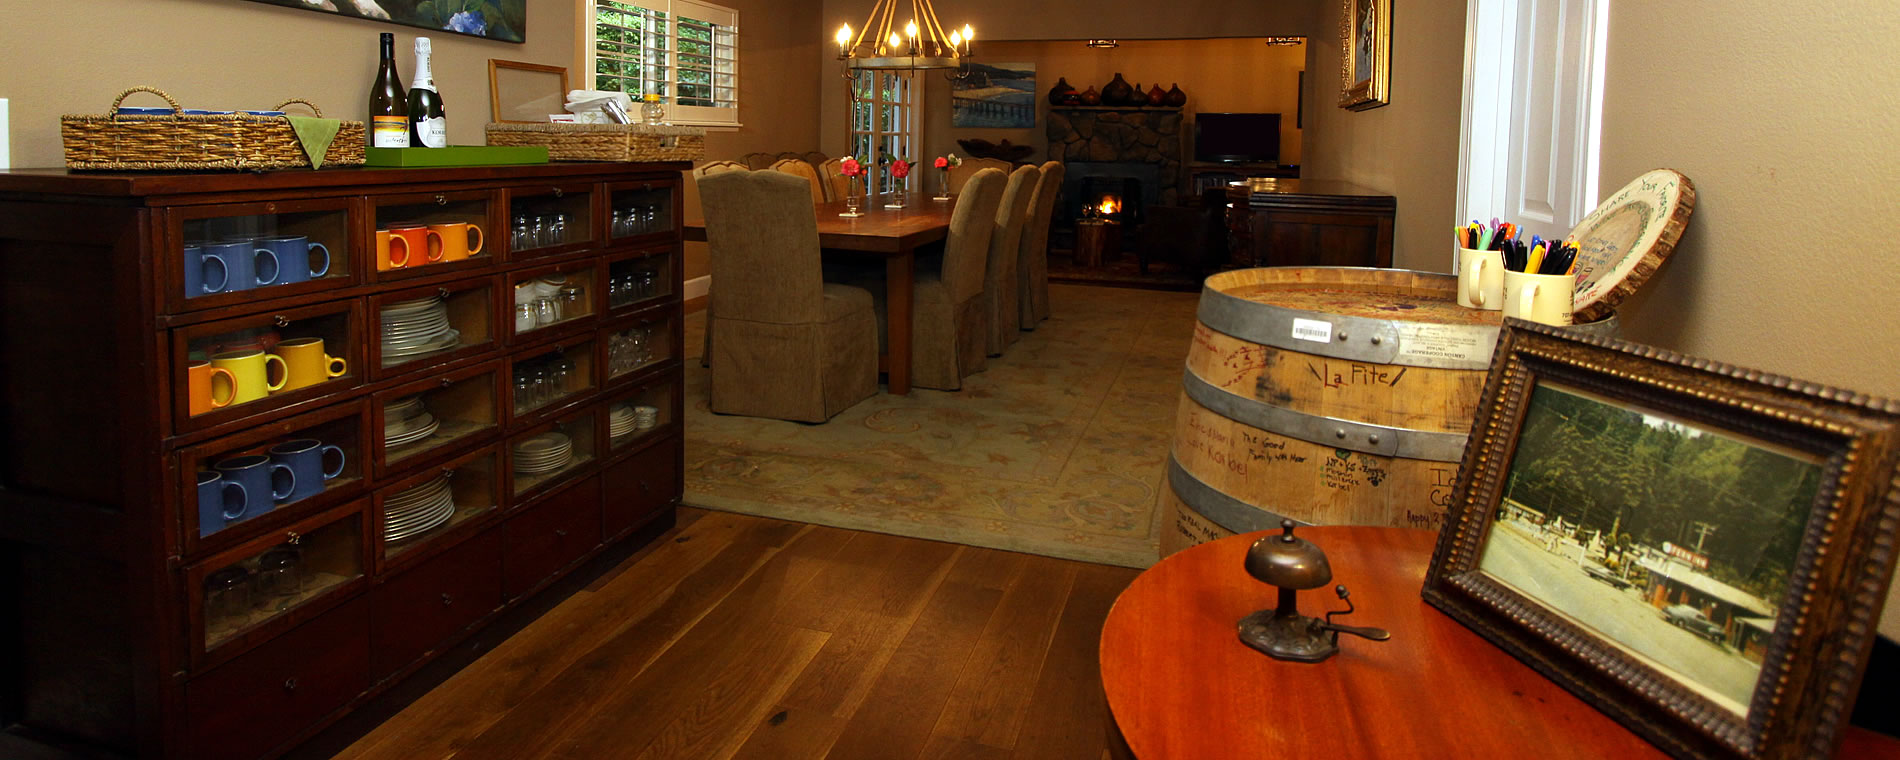 russian river bed and breakfast inns